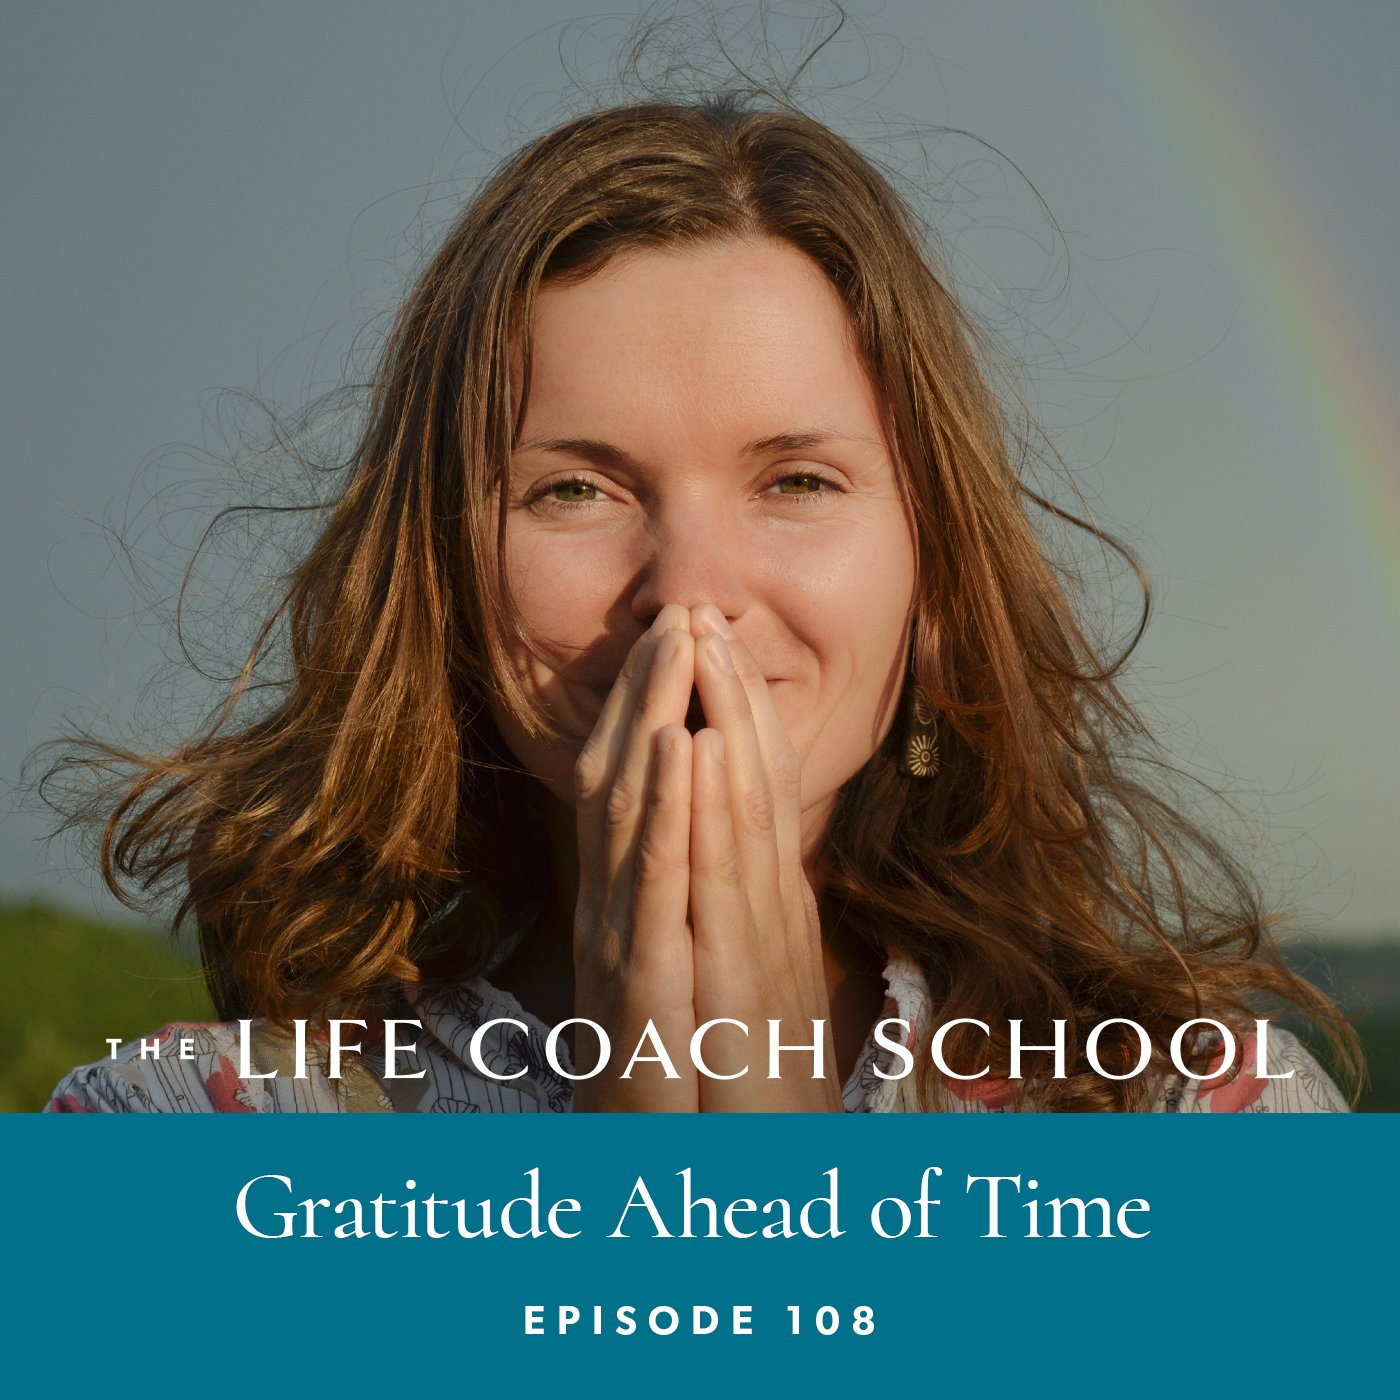 The Life Coach School Podcast with Brooke Castillo | Episode 108 | Gratitude Ahead of Time